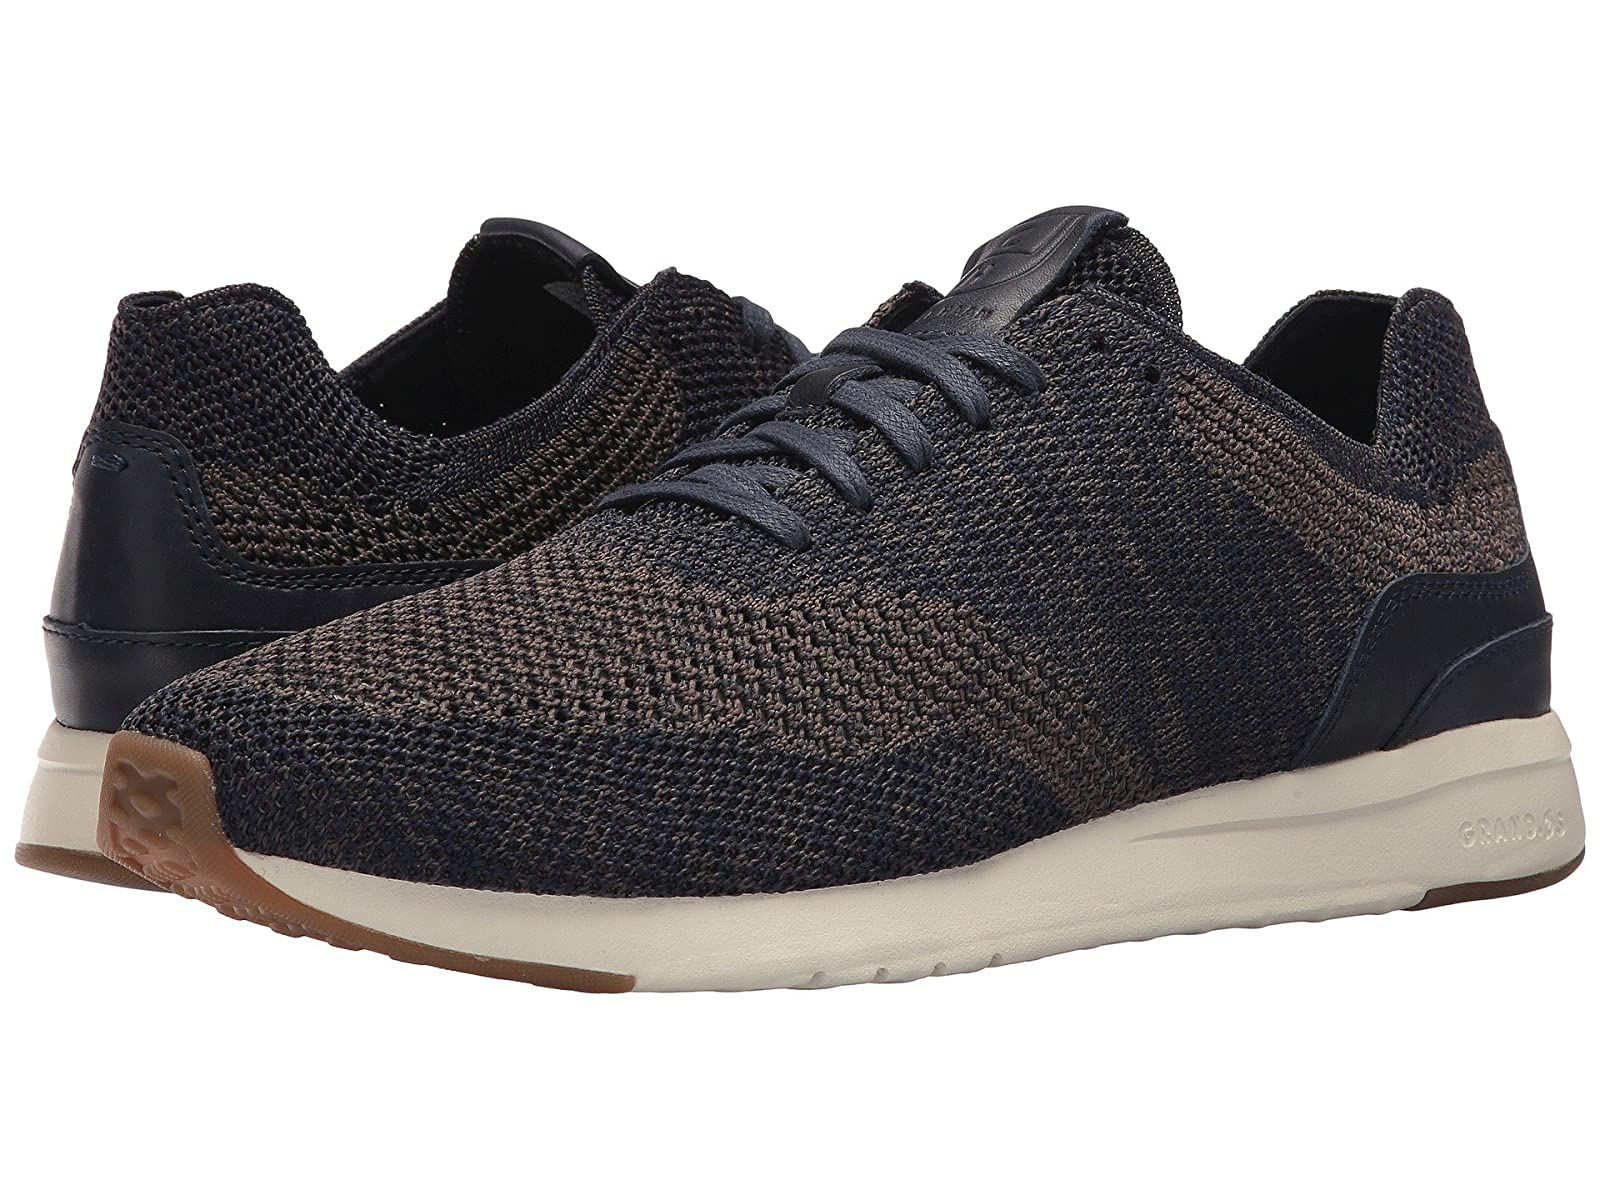 Cole Haan Grandpro Runner StitchliteAtmospheric grades have affordable shoes